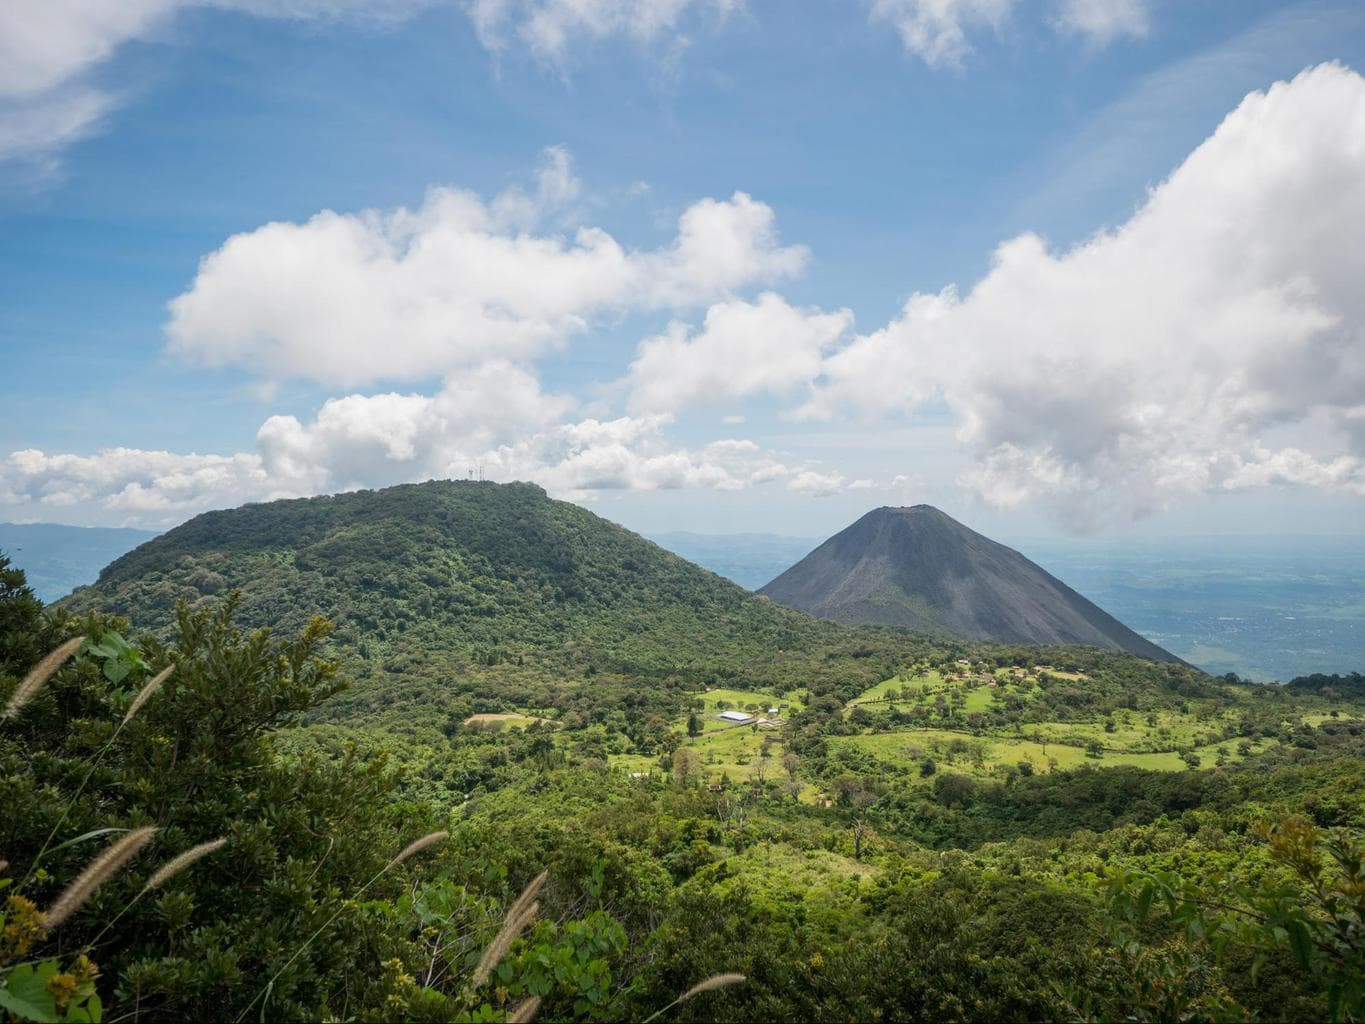 Volcanoes in El Salvador